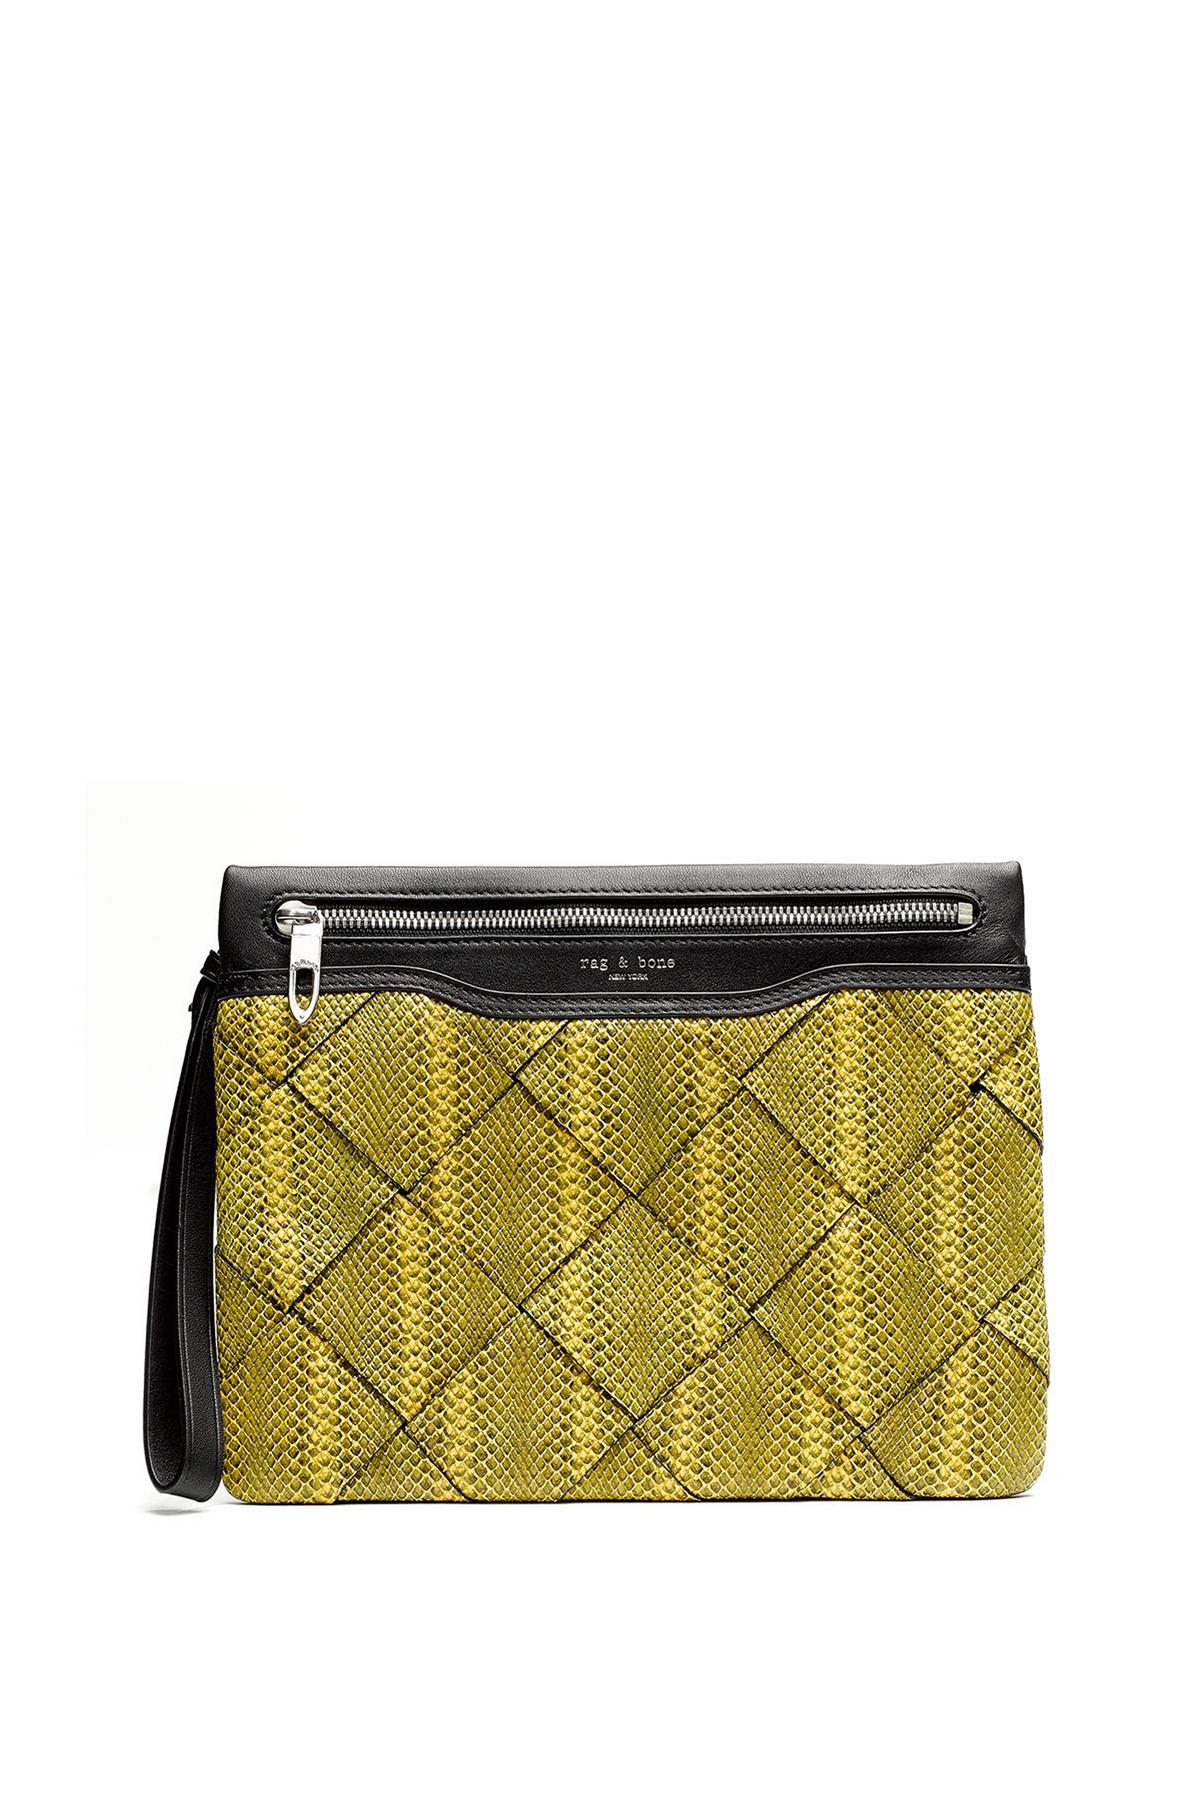 RAG & BONE ZIP CLUTCH